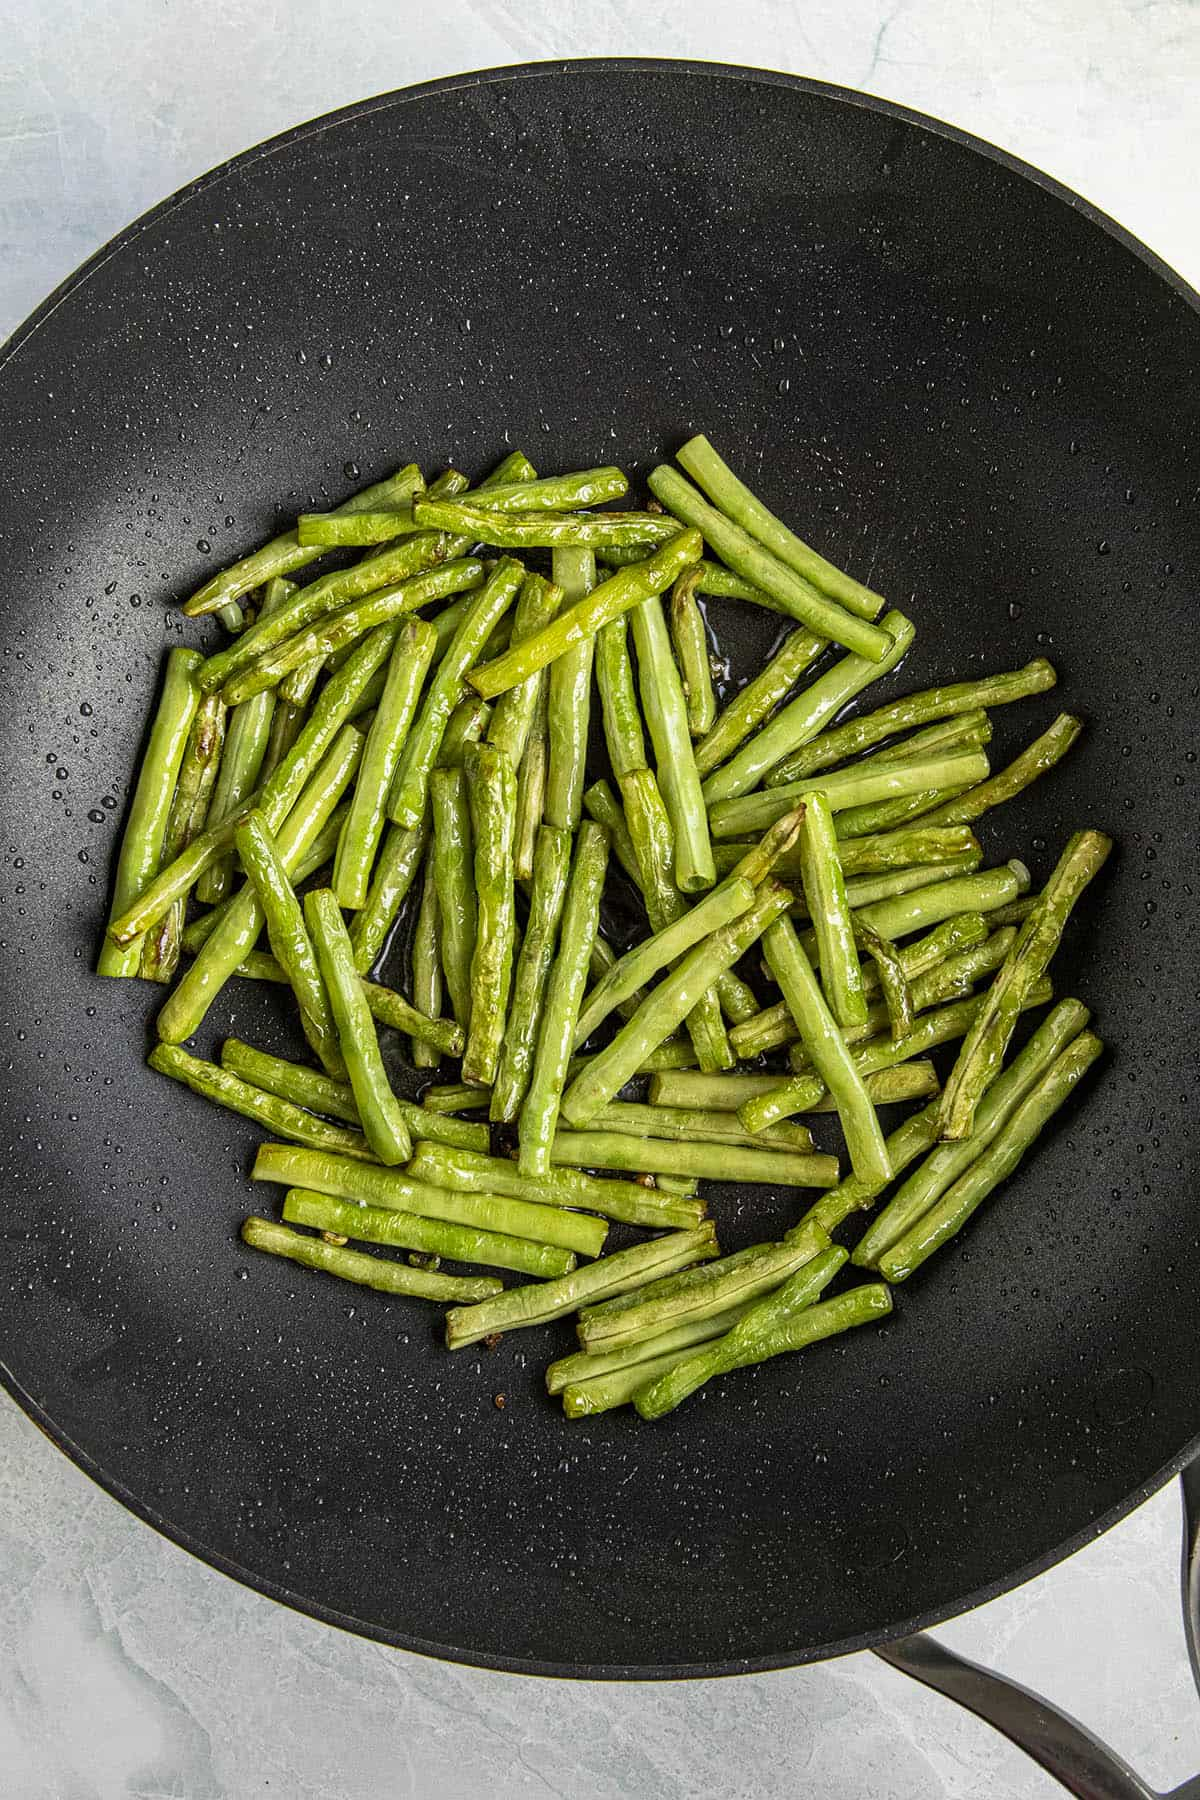 Cooking the long beans in a hot pan